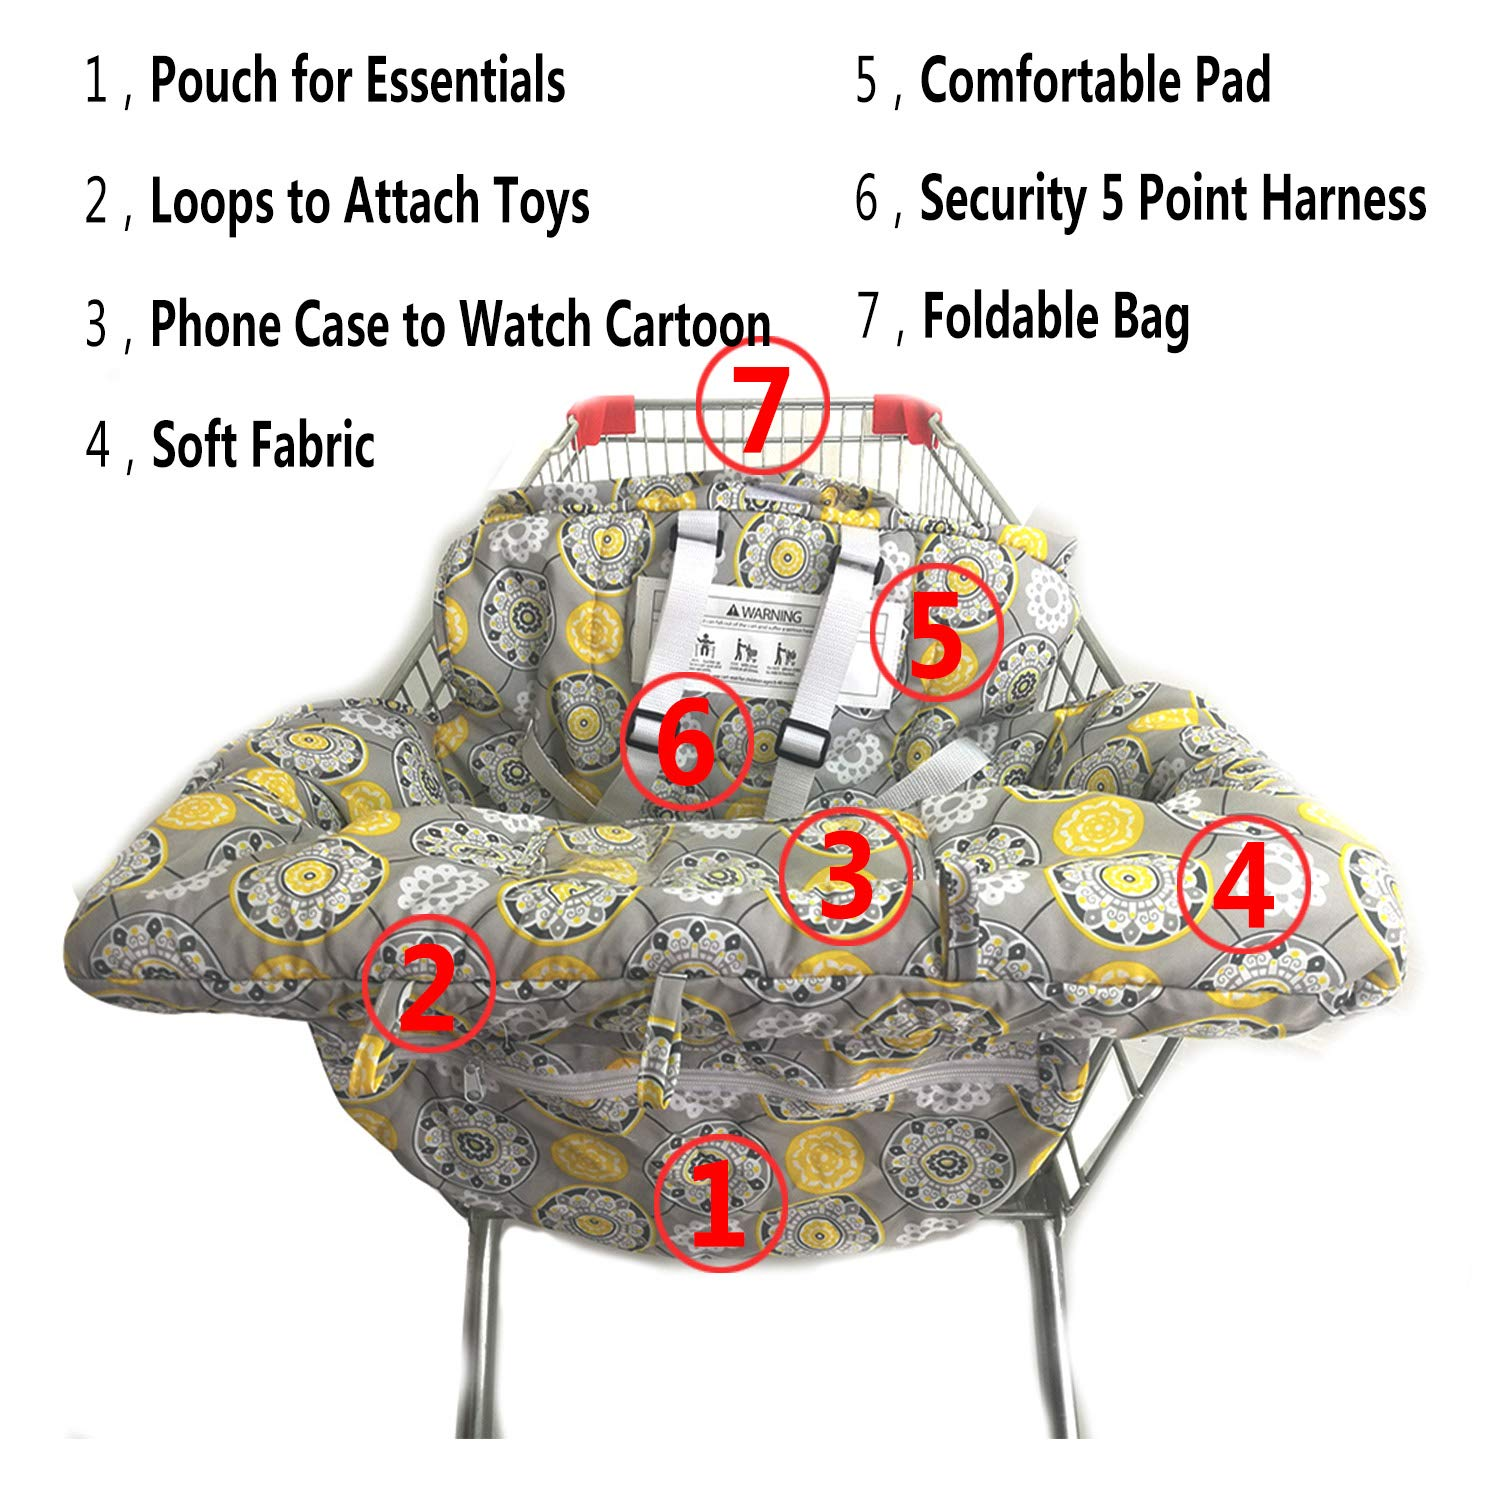 Compact and Cushy by MurphyFine Boy//Girl Design Foldable Portable Seat with Bag for Infant to Toddler Shopping Cart Cover For Baby- 2-in-1 Compatible with Grocery Cart Seat and High Chair